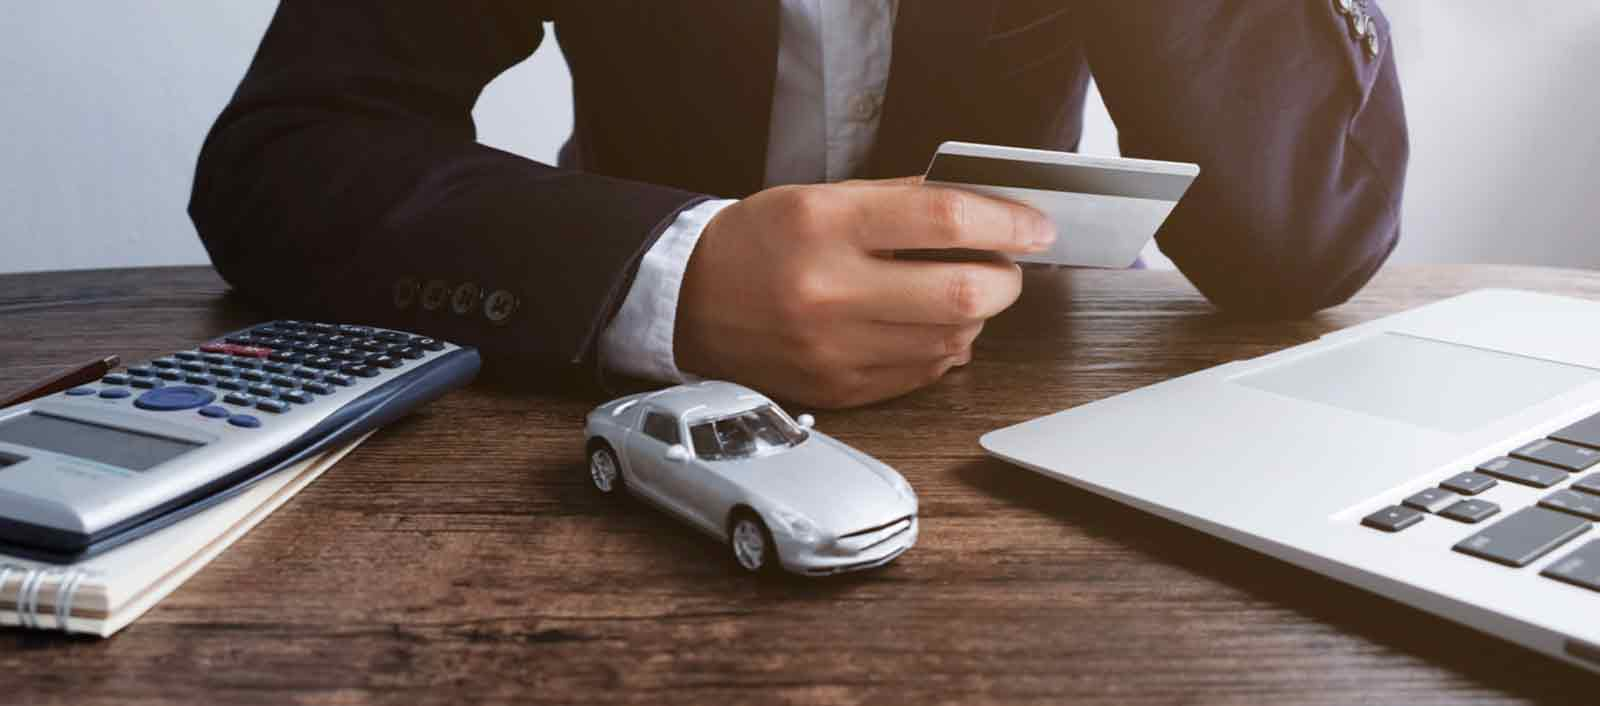 How To Choose Between Buying Vs. Leasing Your New Vehicle